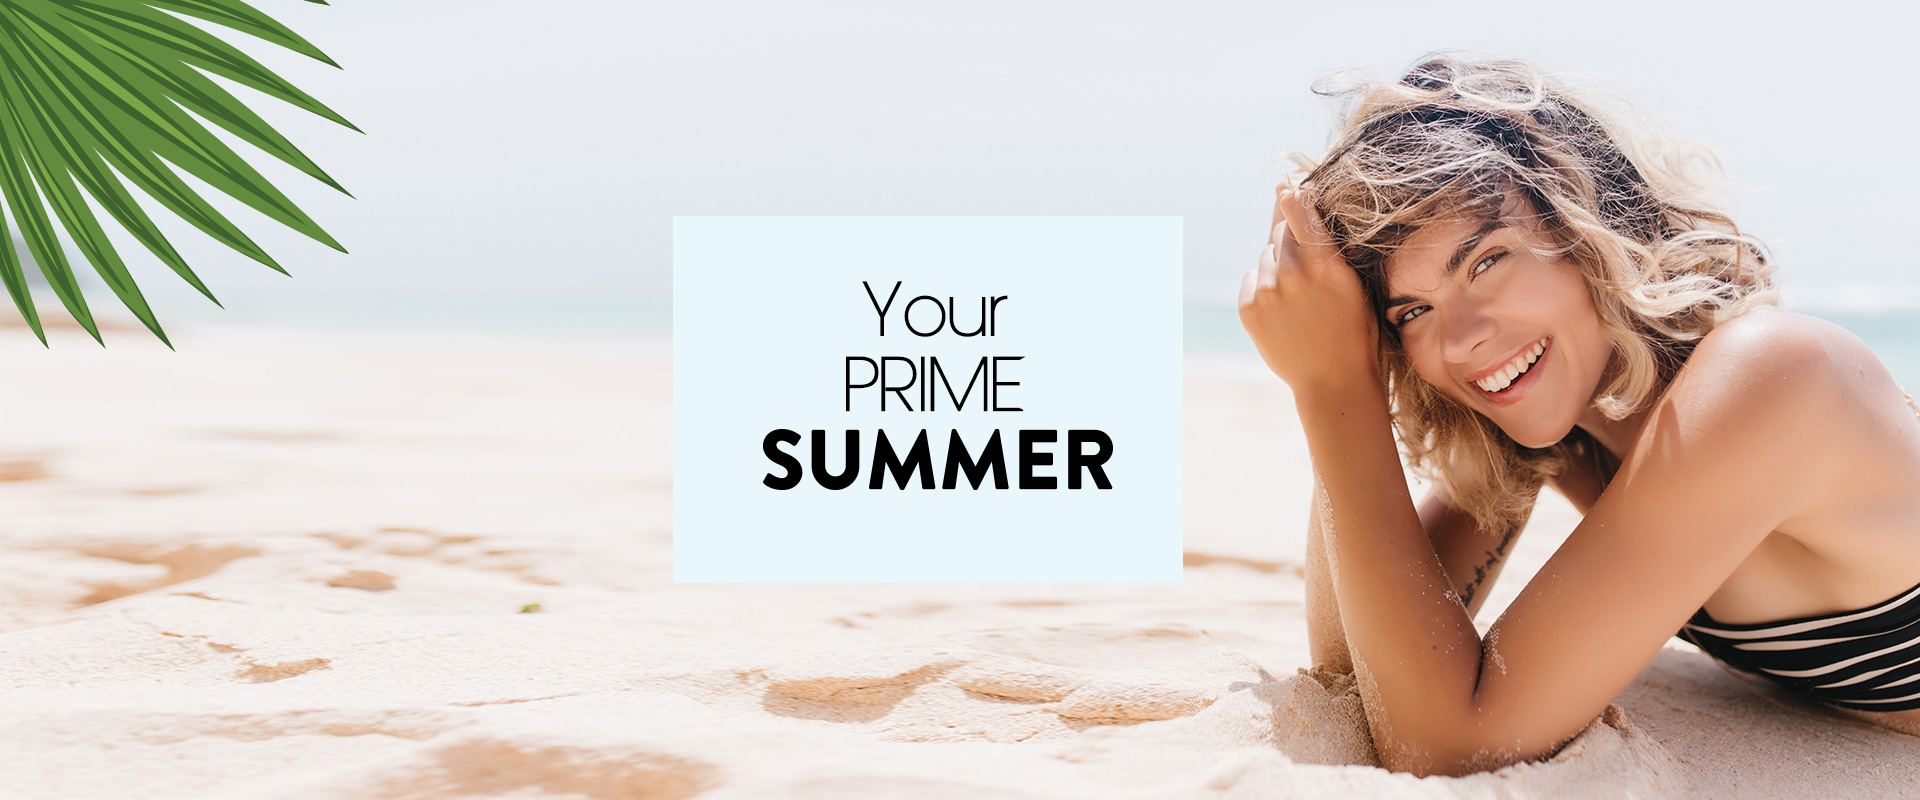 Your Prime Summer is here!